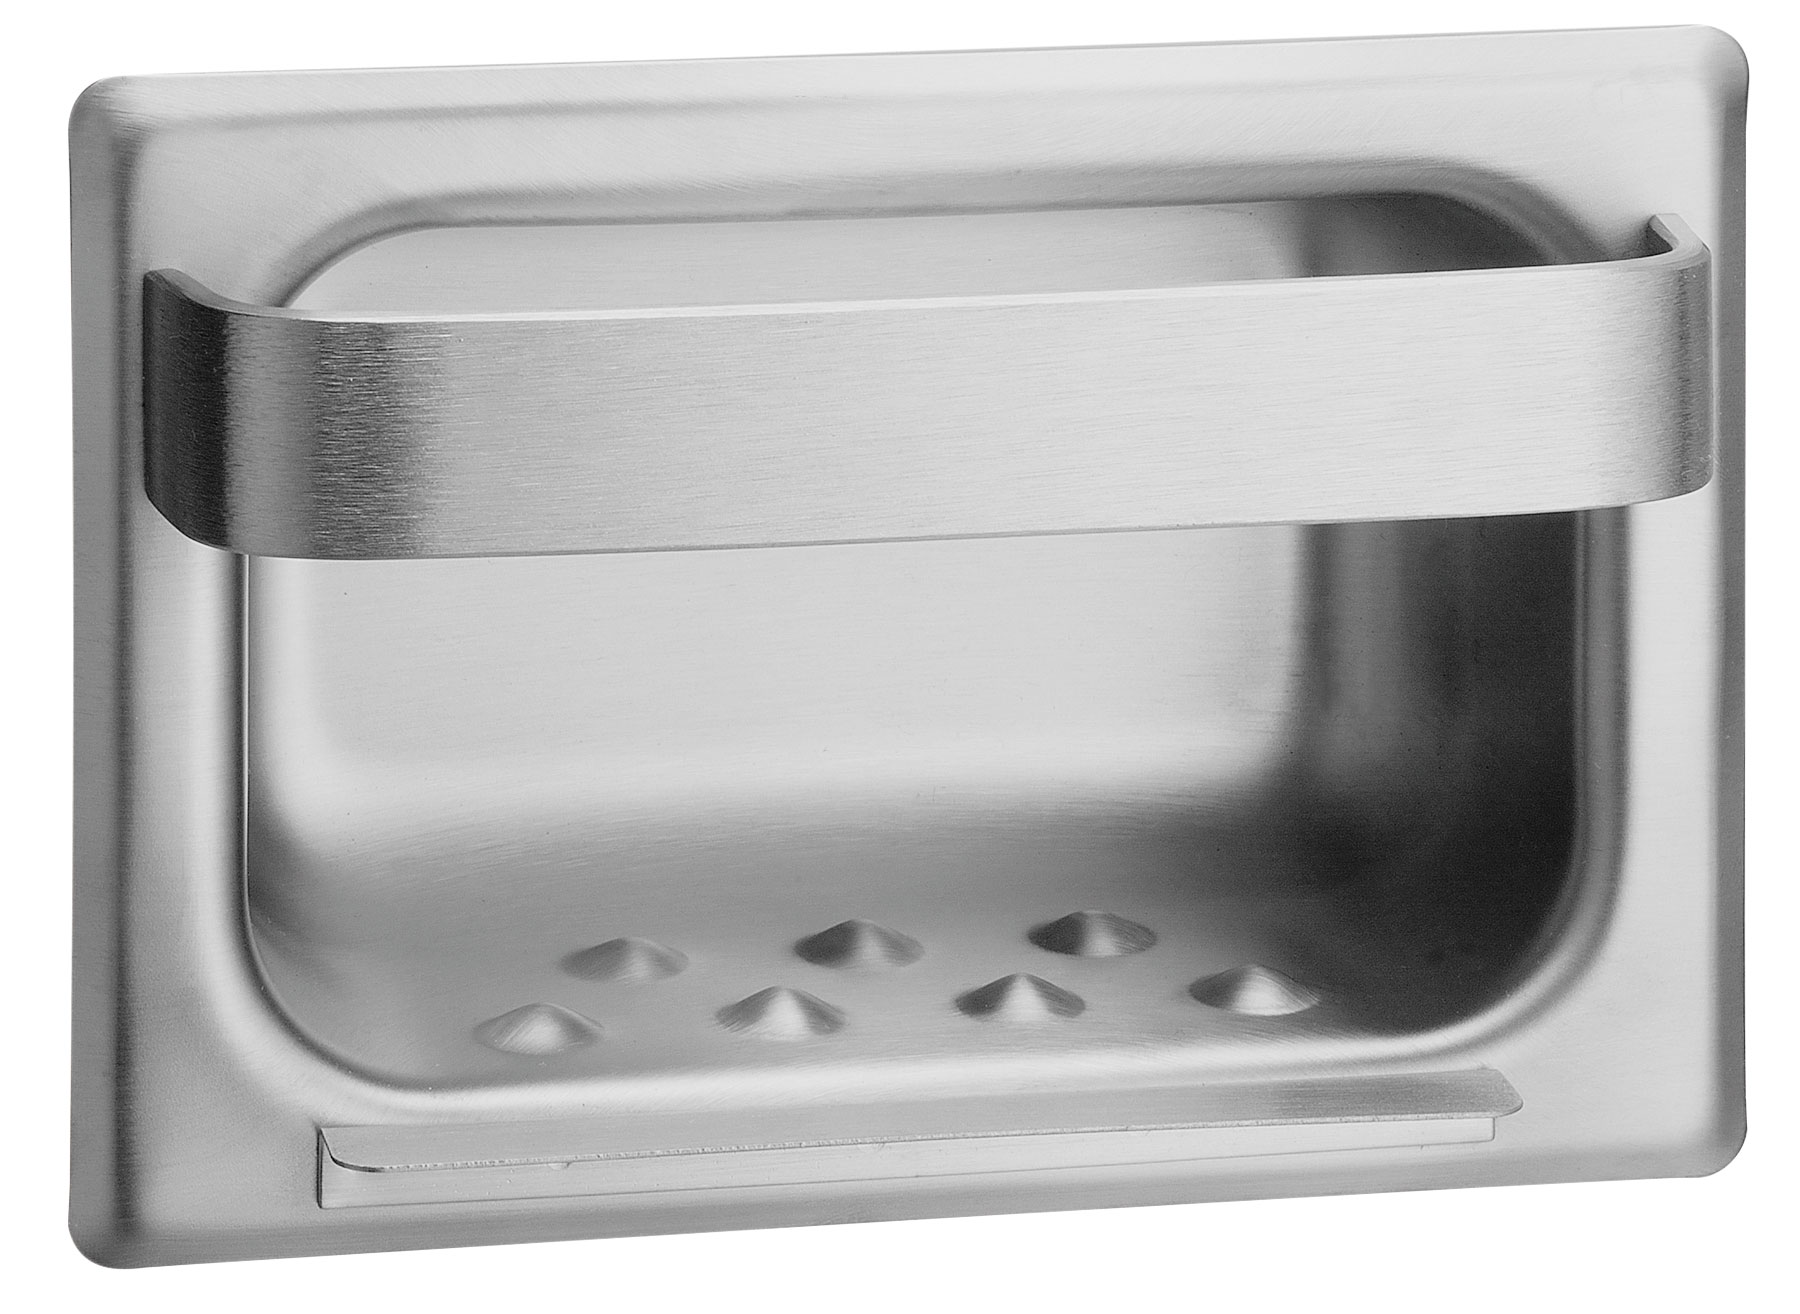 Bradley 940 Stainless Steel Recessed Soap Dish & Towel Bar - w/ Mortar Lugs